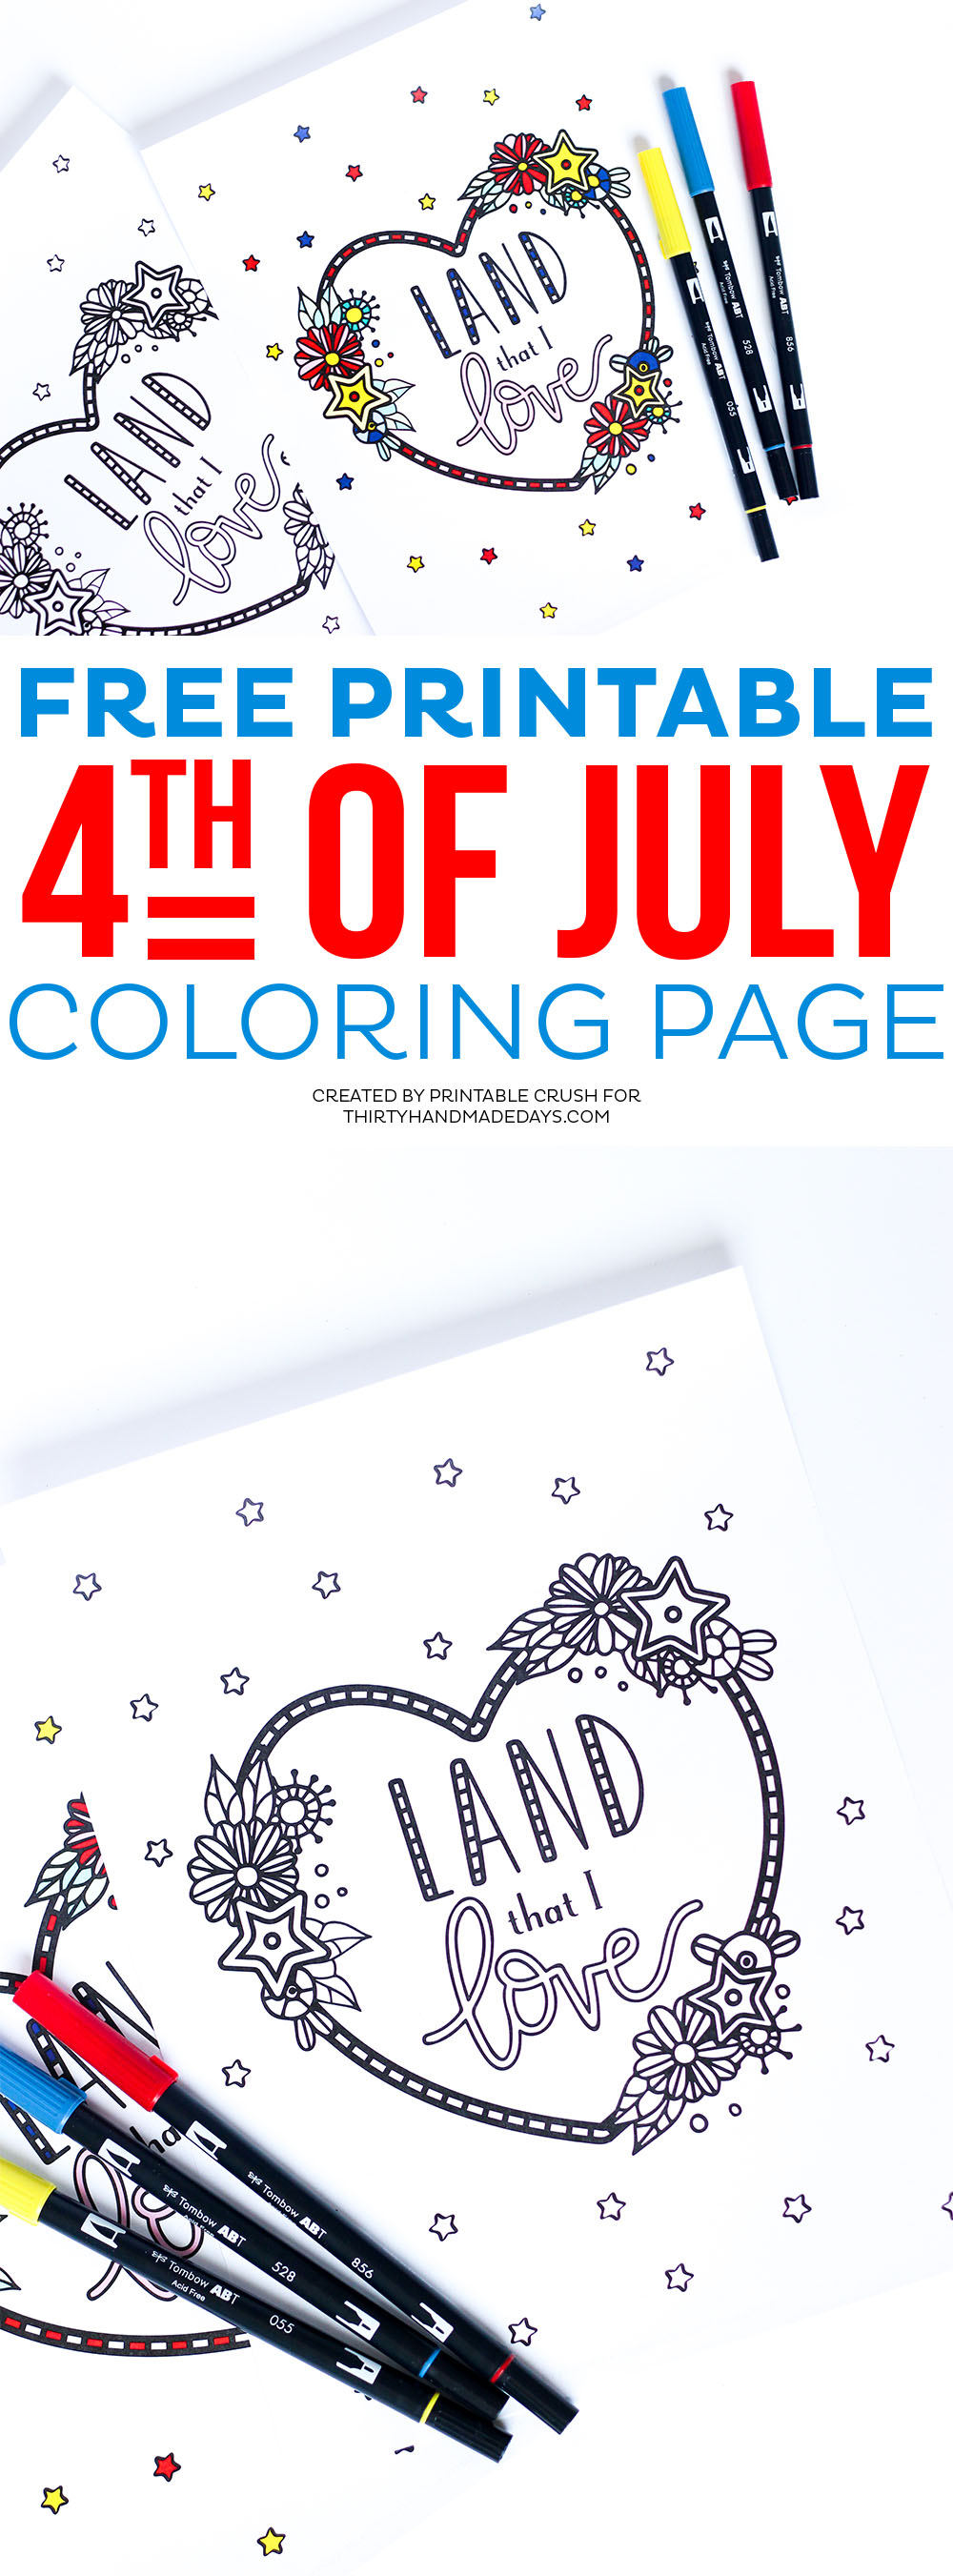 Printable coloring pages july 4 - Download This Pretty Free Printable 4th Of July Coloring Page For Your Kids Or For Guests